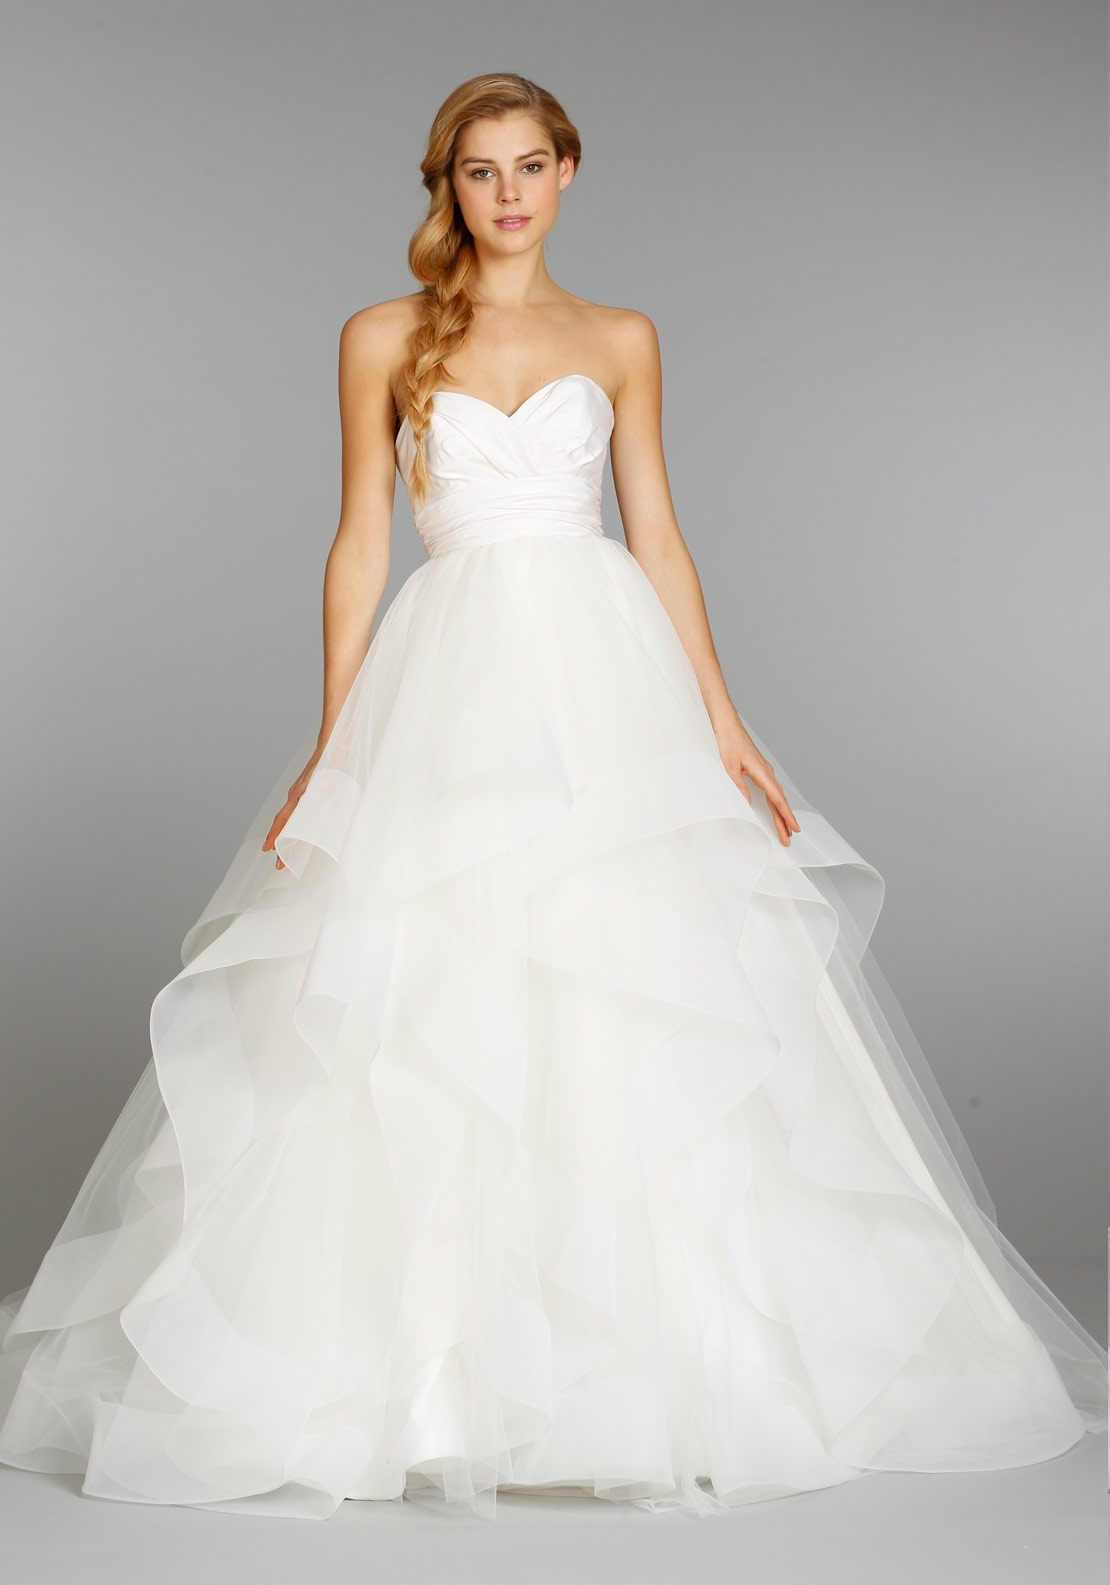 HAYLEY PAIGE BRIDAL US SIZES 10S IVO